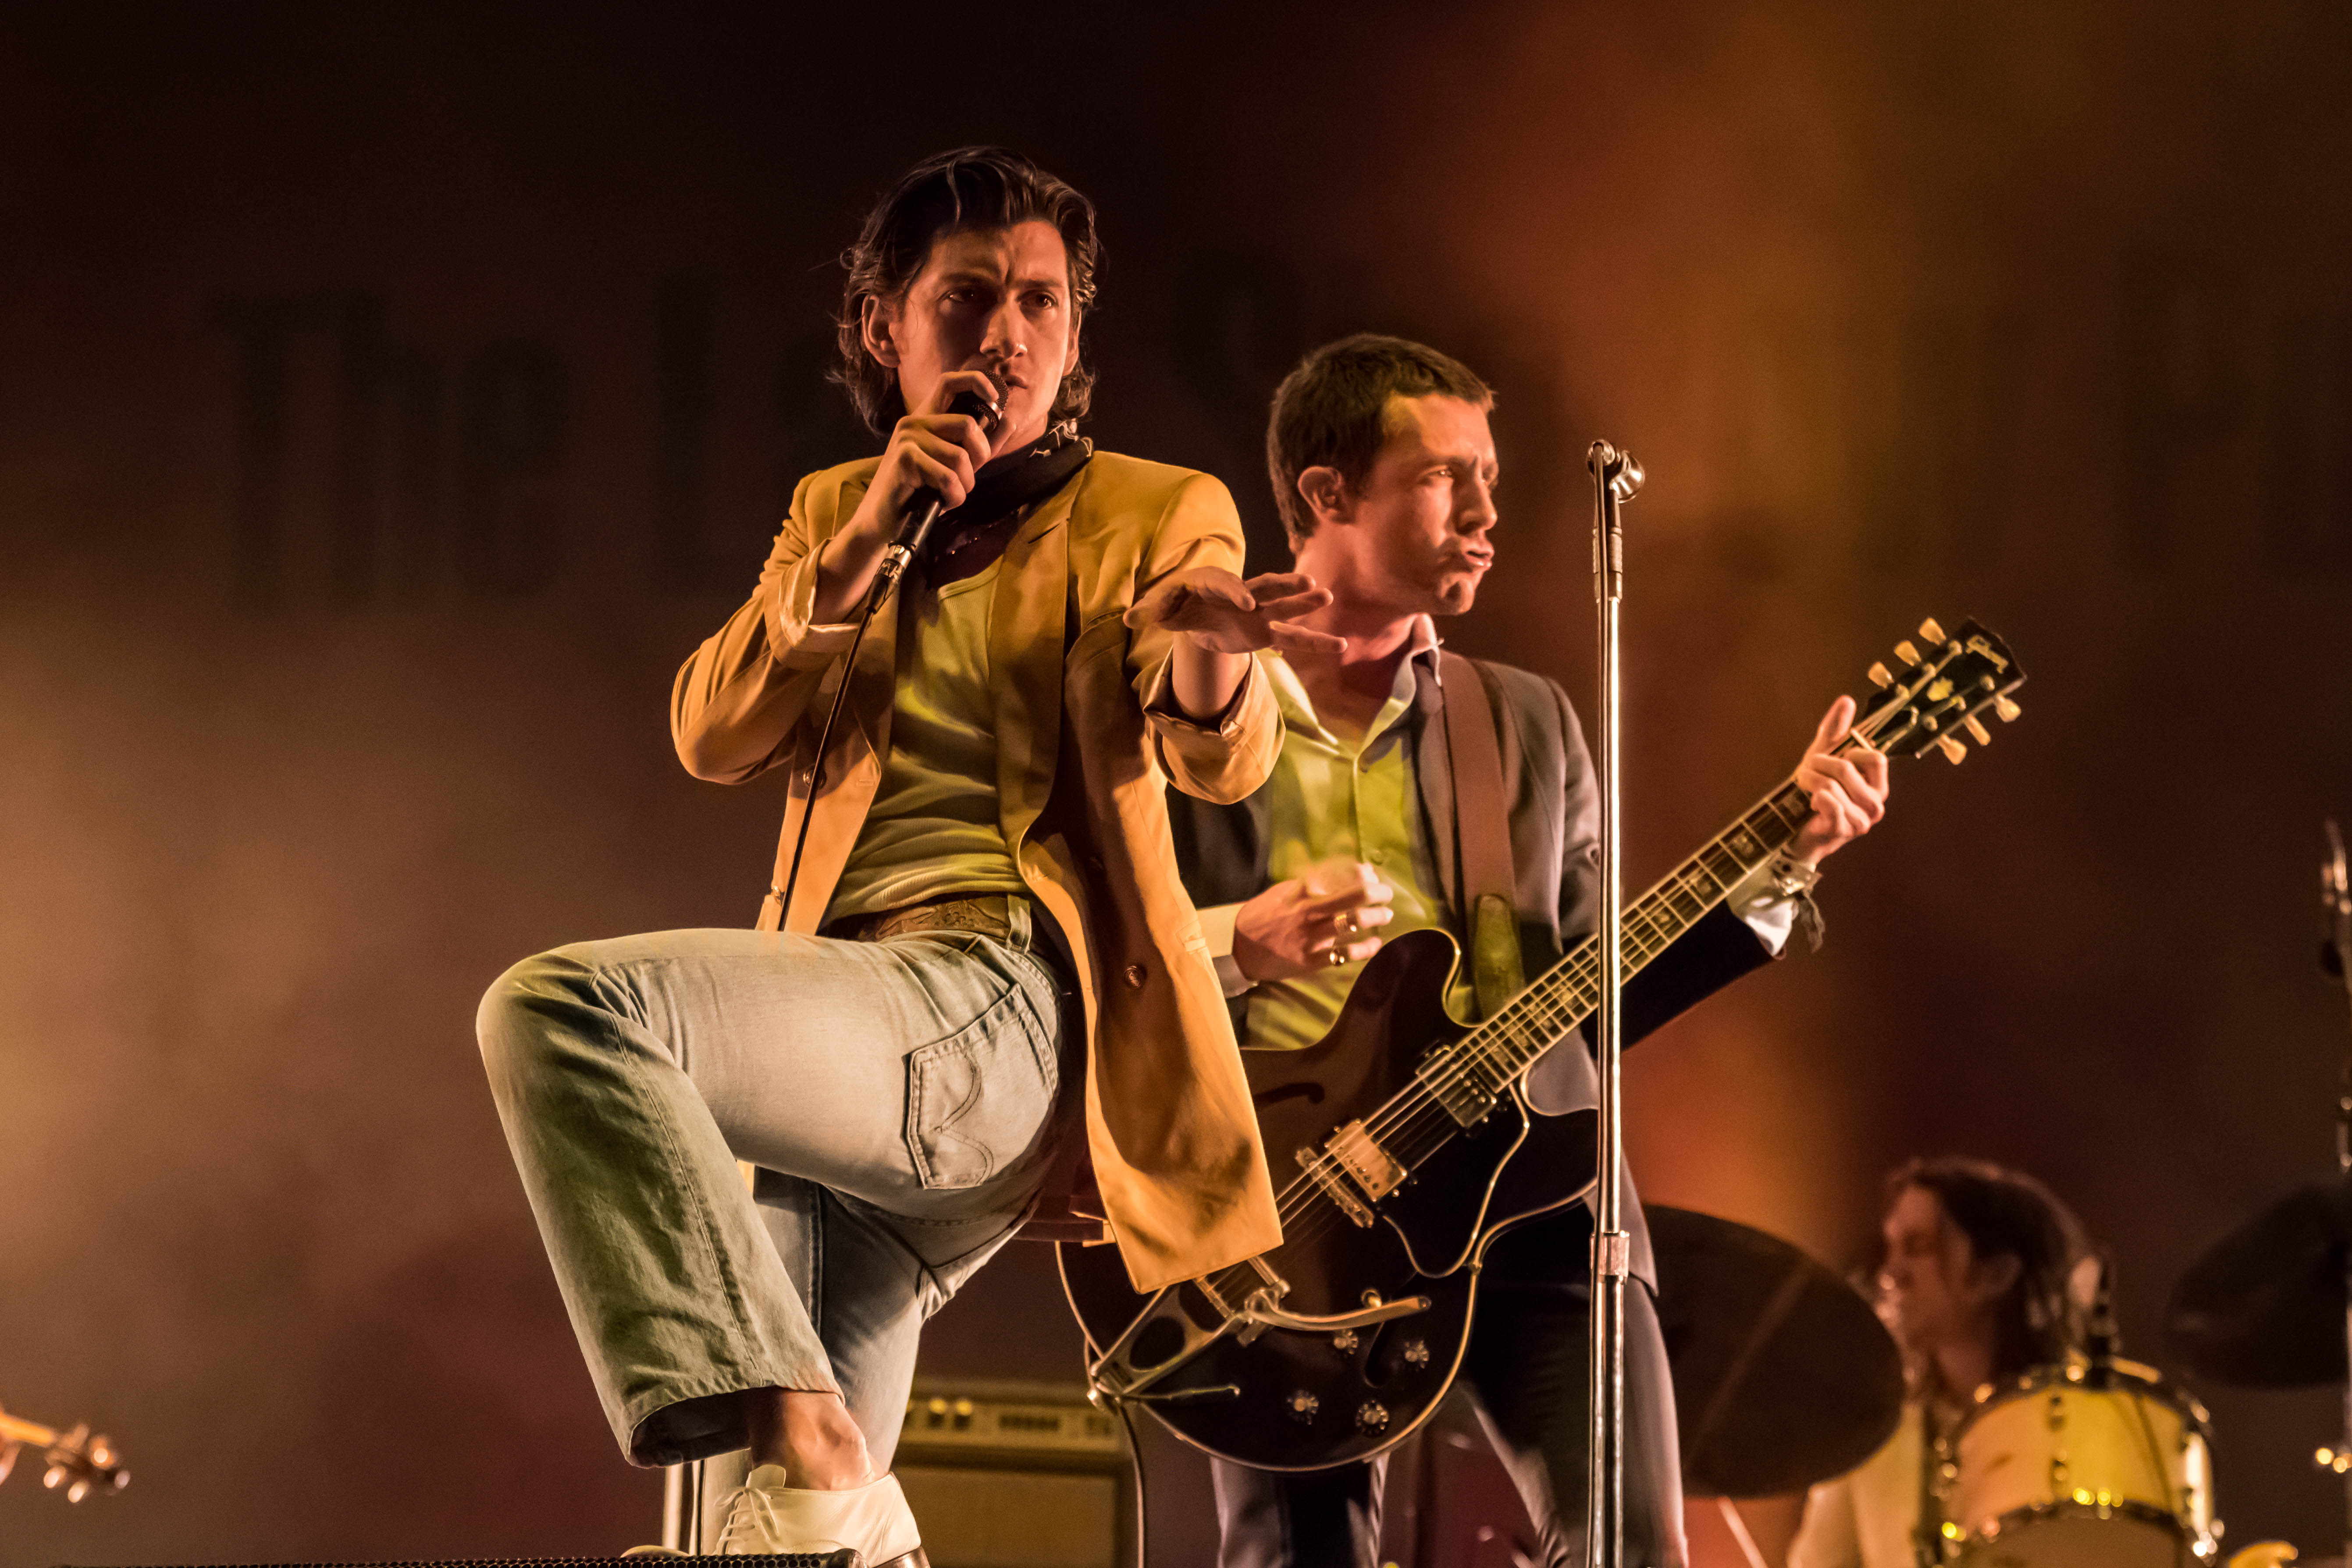 10.The Last Shadow Puppets